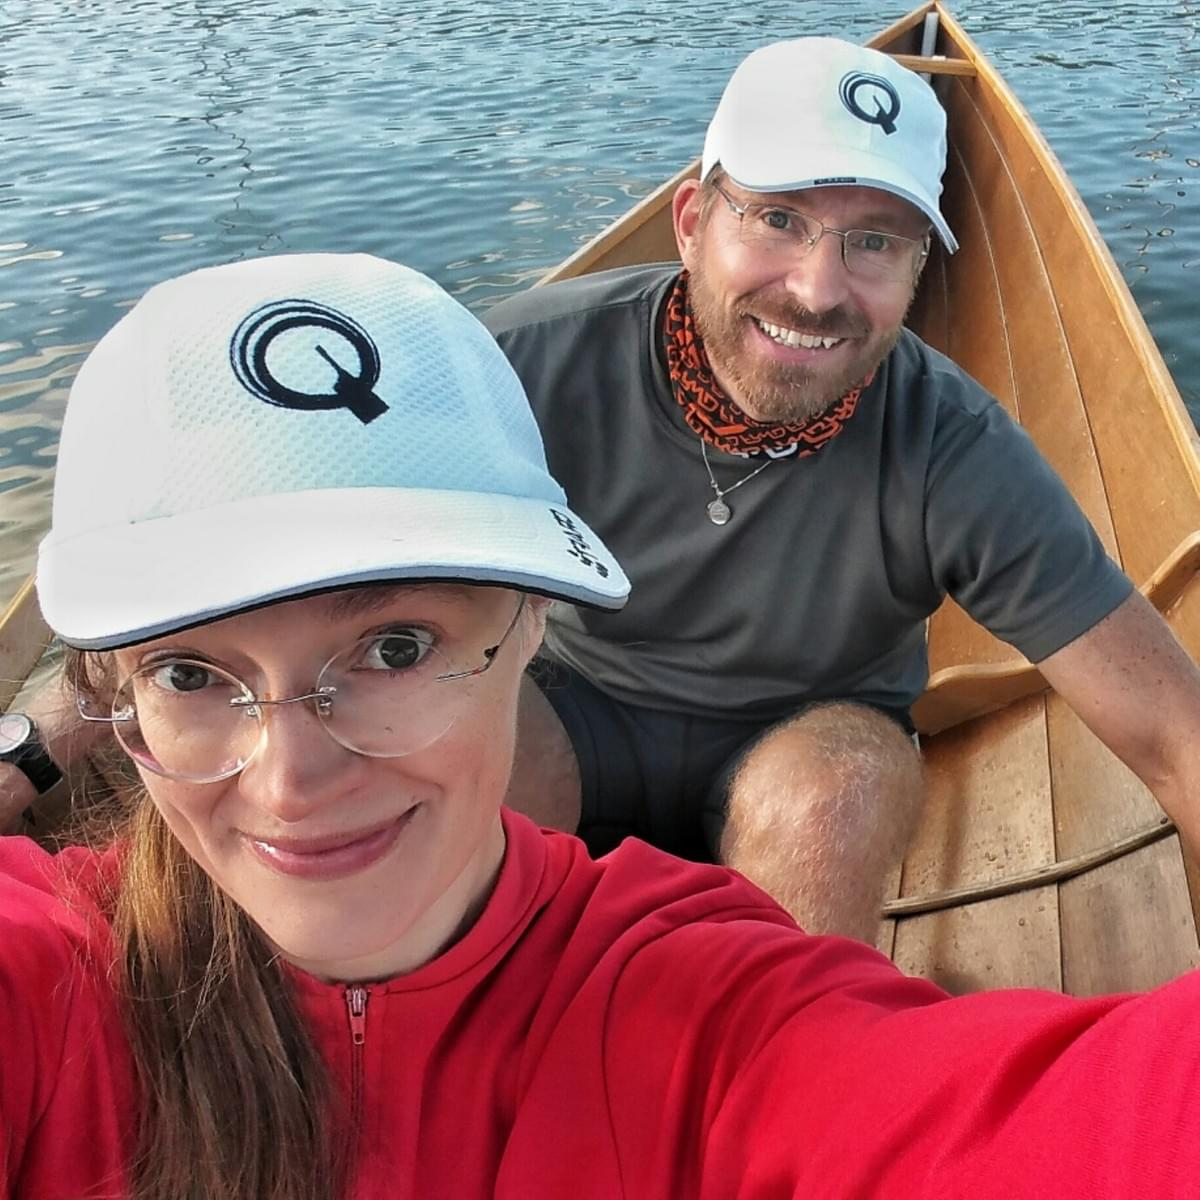 Quiske rowing school teachers Kristina Björknäs and Pentti Soini